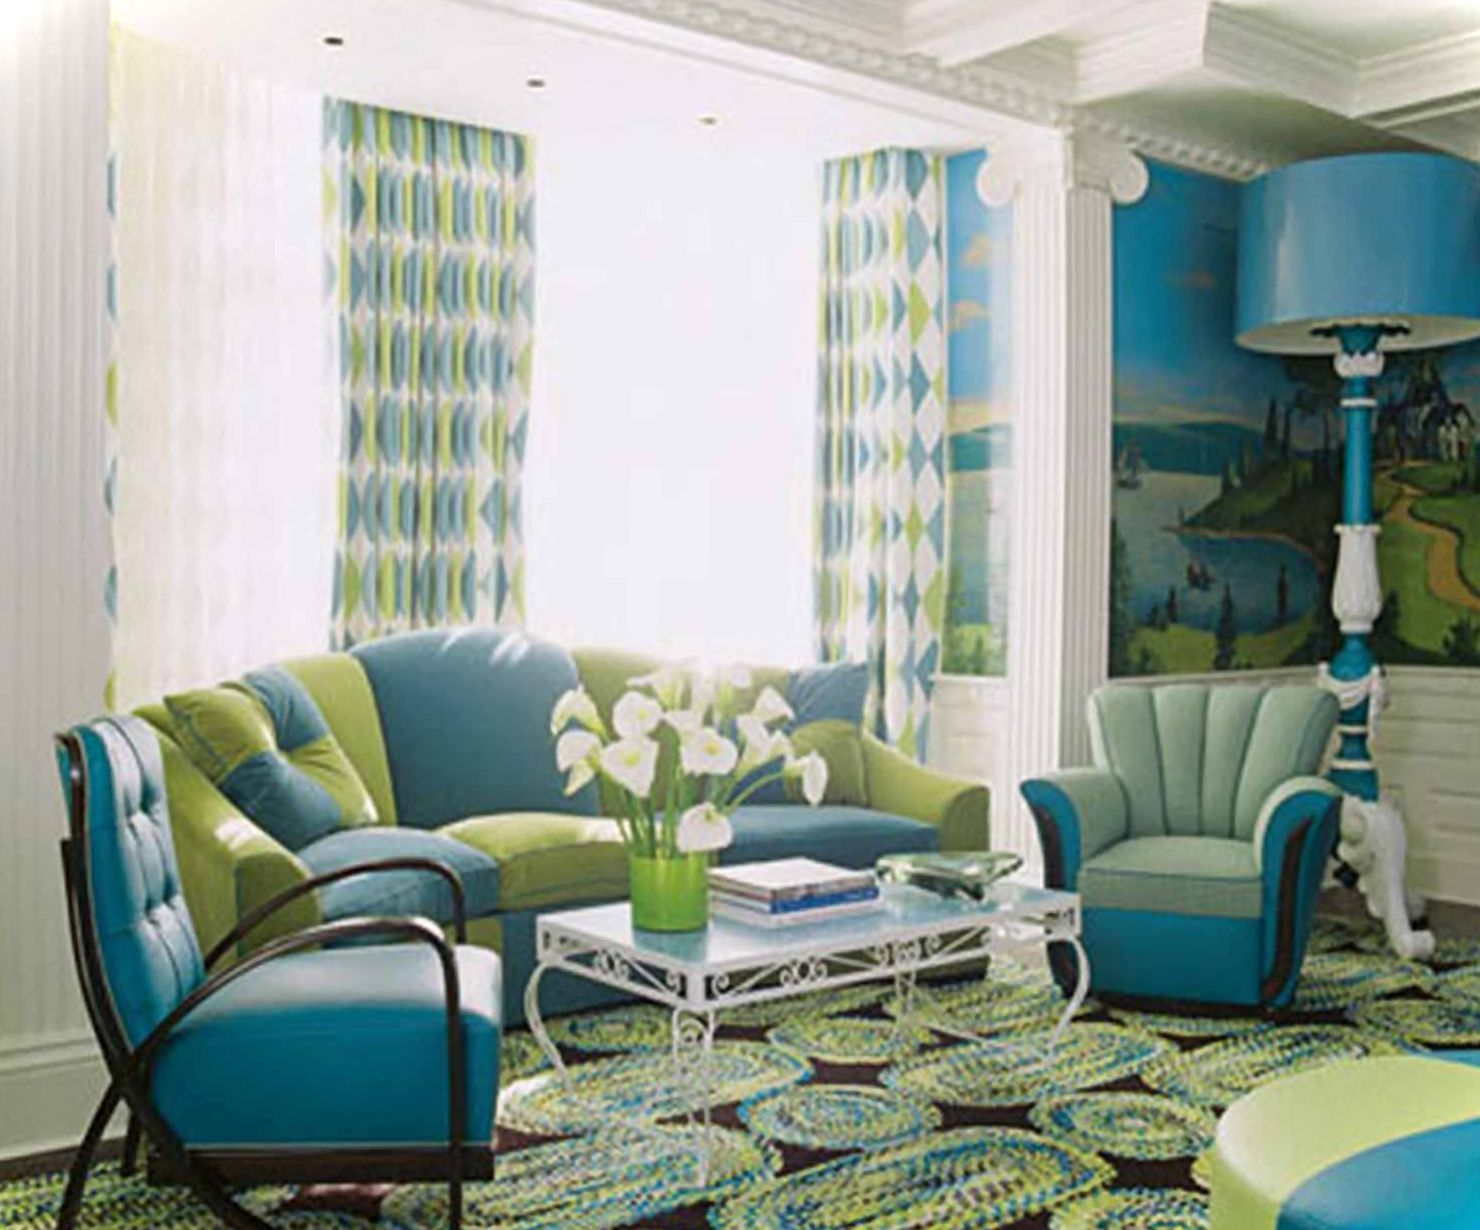 Brown Blue And Green Living Room Ideas Blue And Green Living Room Green Living Room Decor Living Room Green